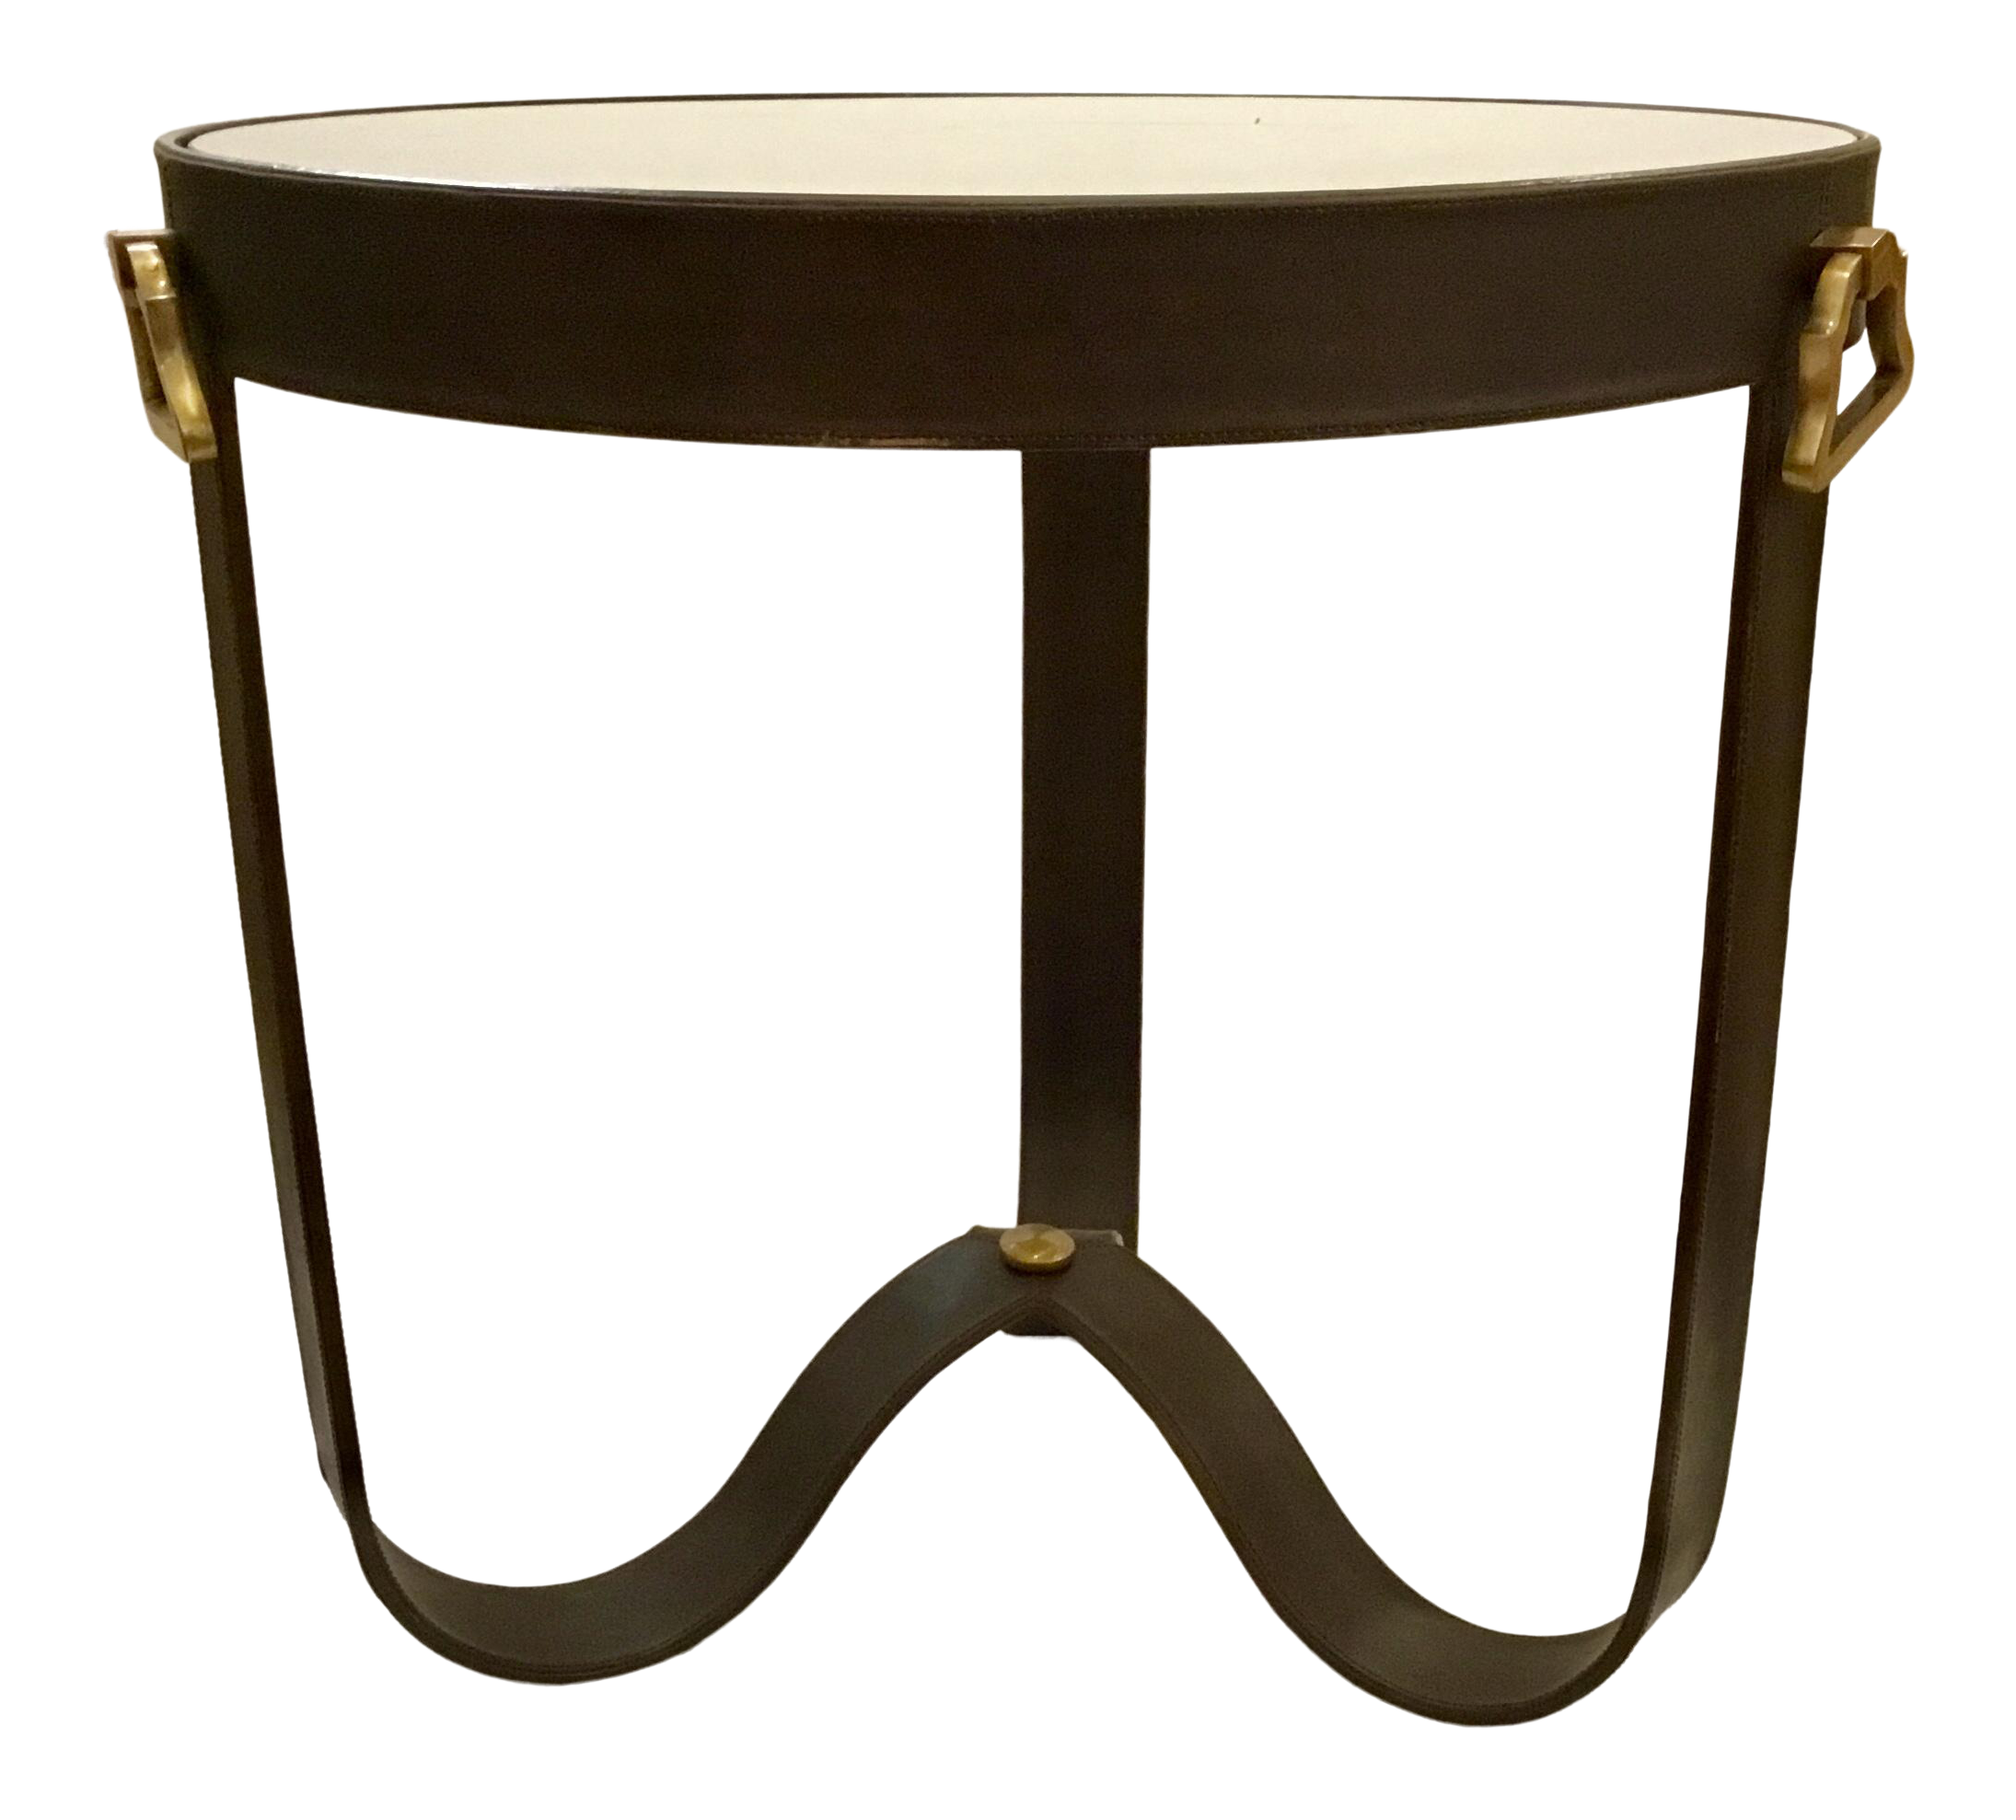 barry dixon for arteriors modern brown leather stirup end table tables chairish round glass cover grey and coffee royal furniture girl homesense coat rack row quality top side